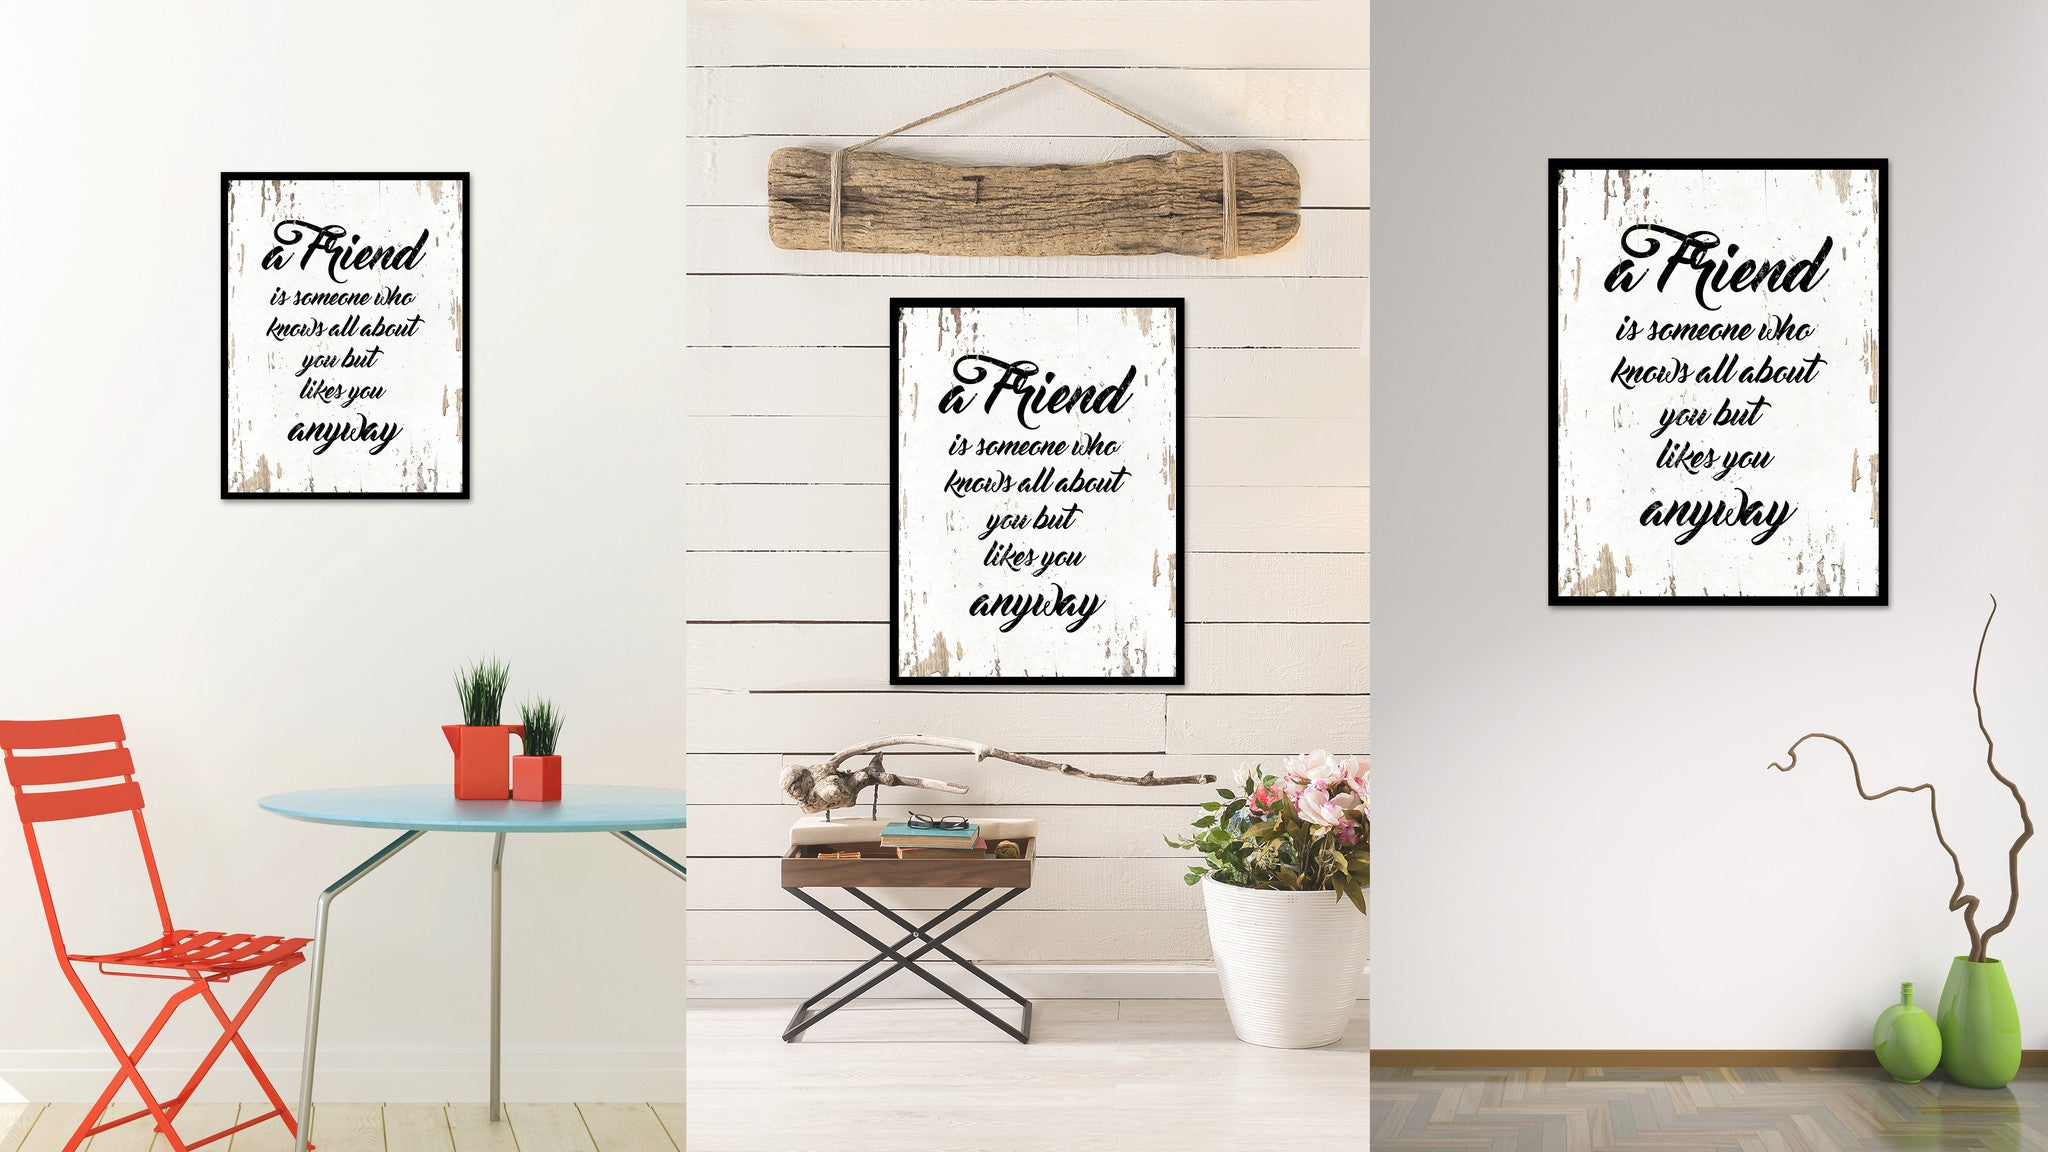 A Friend Is Someone Who Knows All About You Quote Saying Gift Ideas Home Decor Wall Art 111433